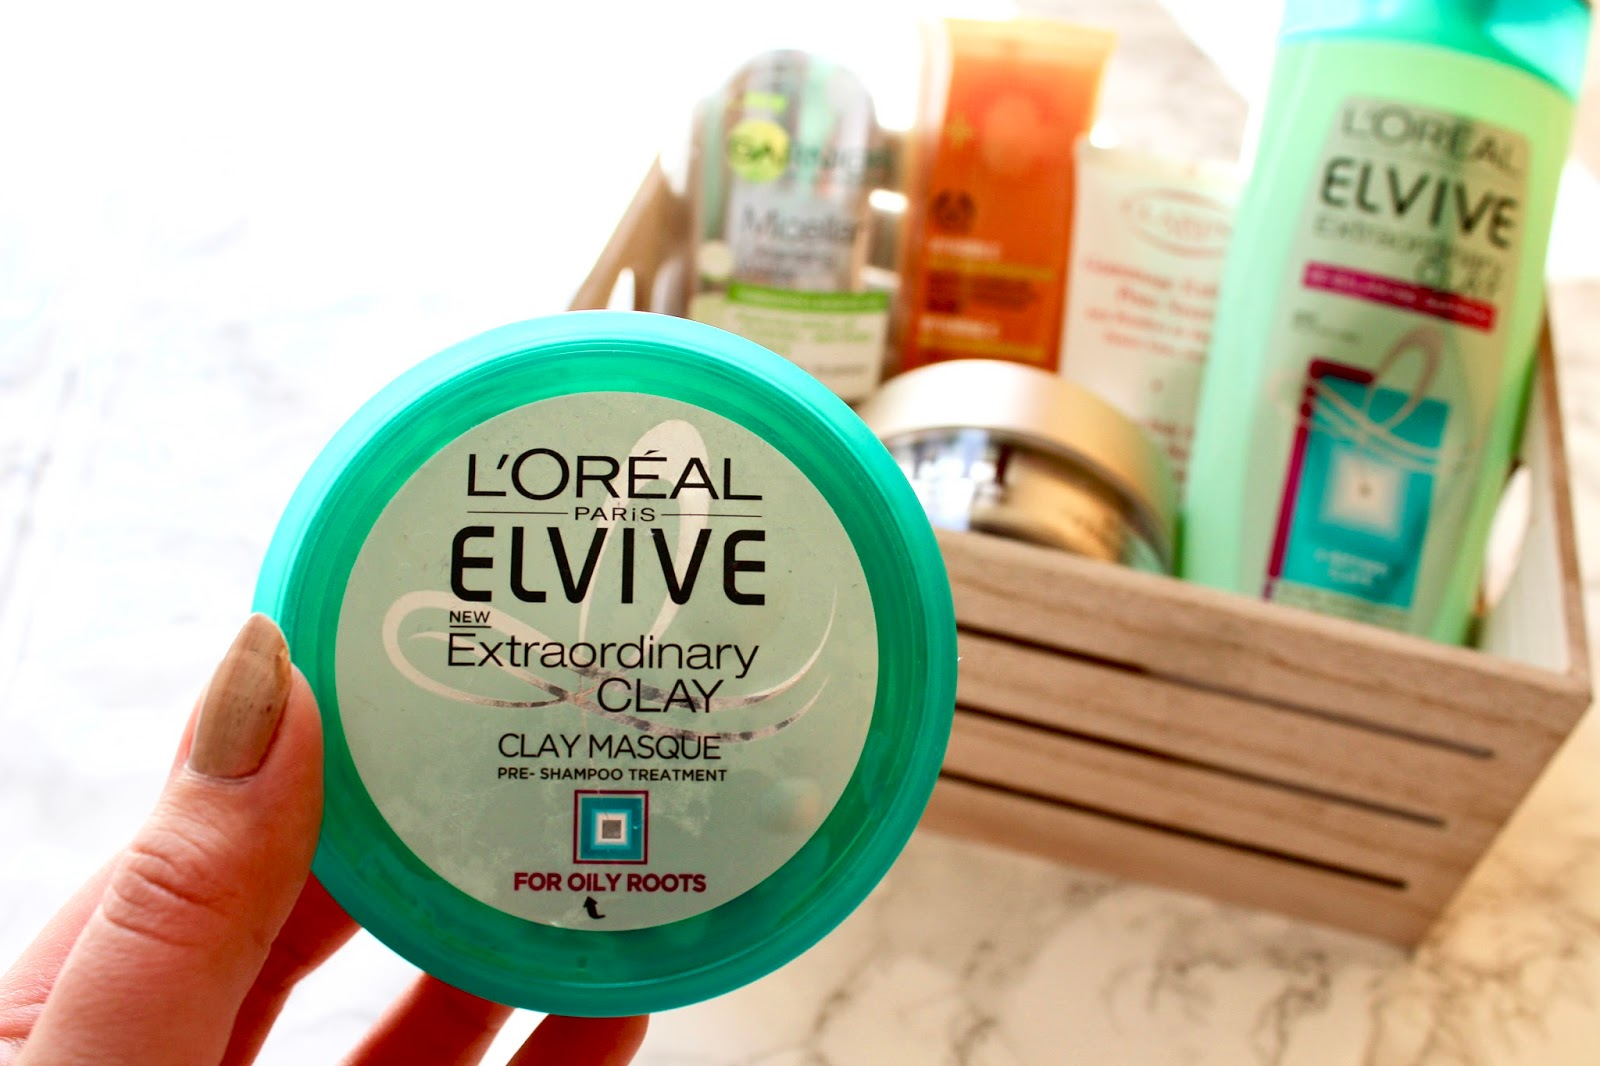 Empties L'Oreal Elvive Clay Masque